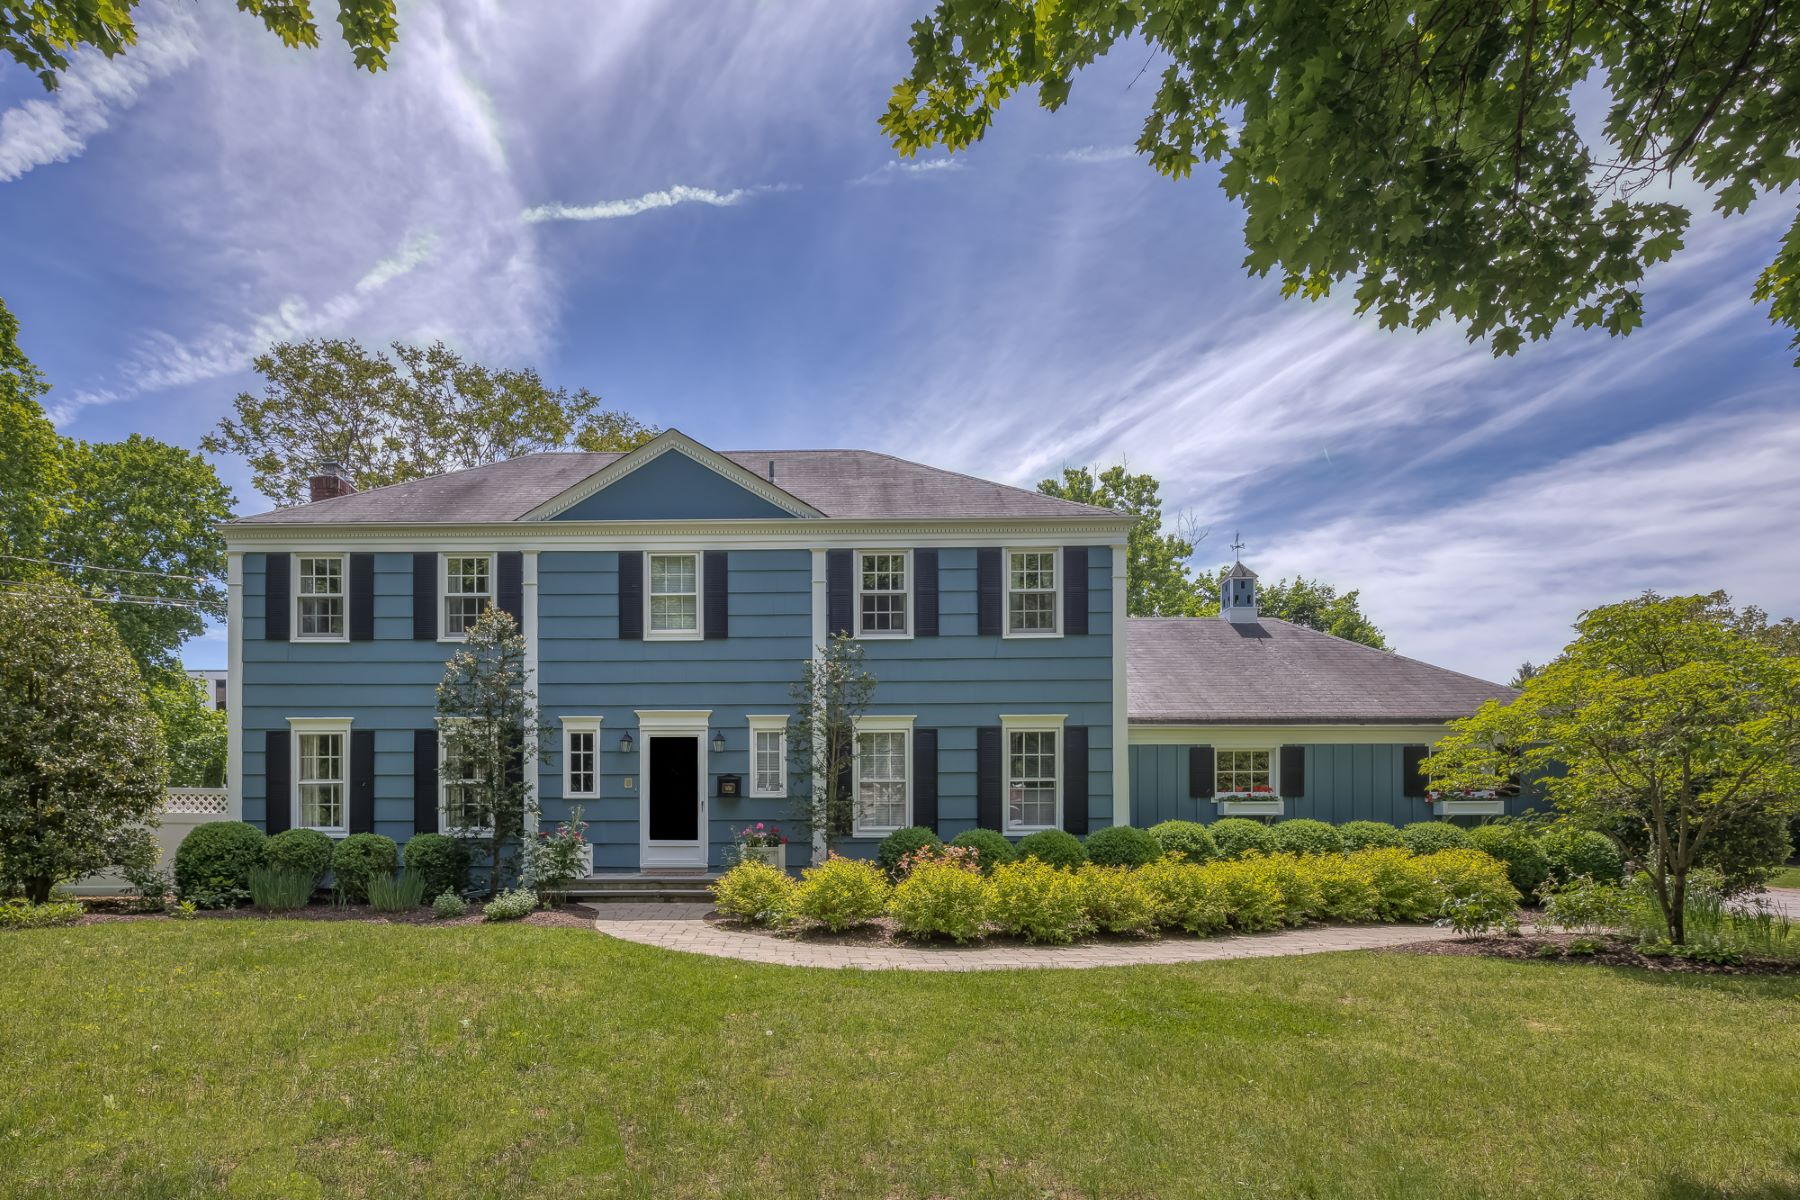 Single Family Homes for Sale at Stunning Colonial 1 Shephard Place Morris Township, New Jersey 07960 United States